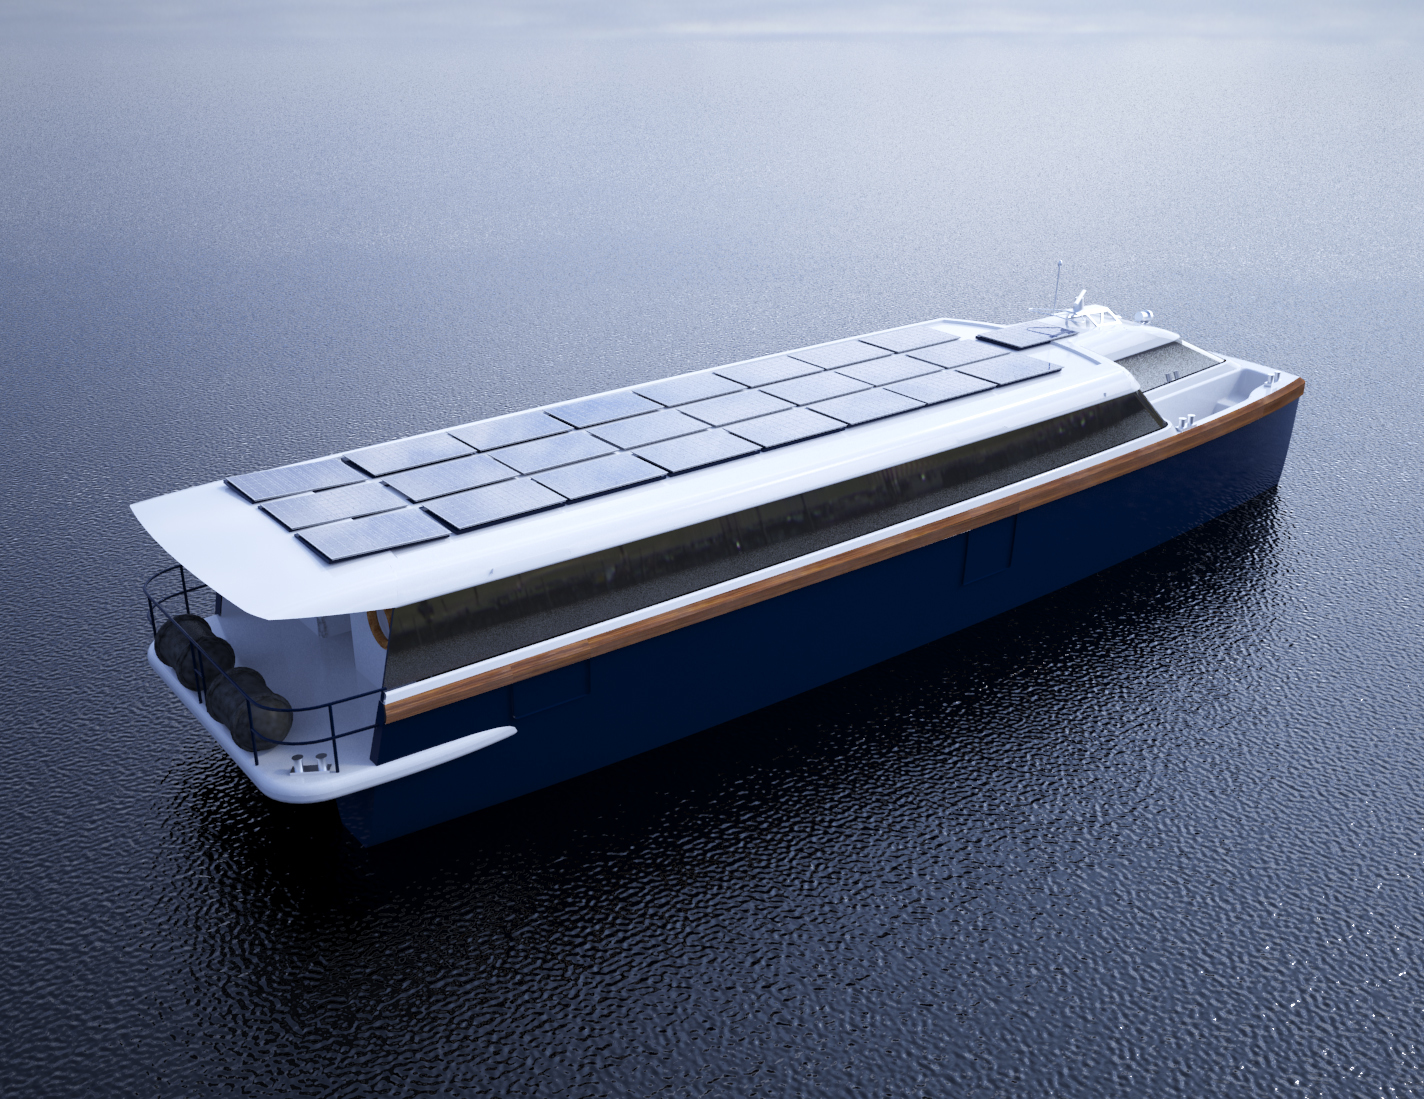 Visual of the Marservis cannabis boat